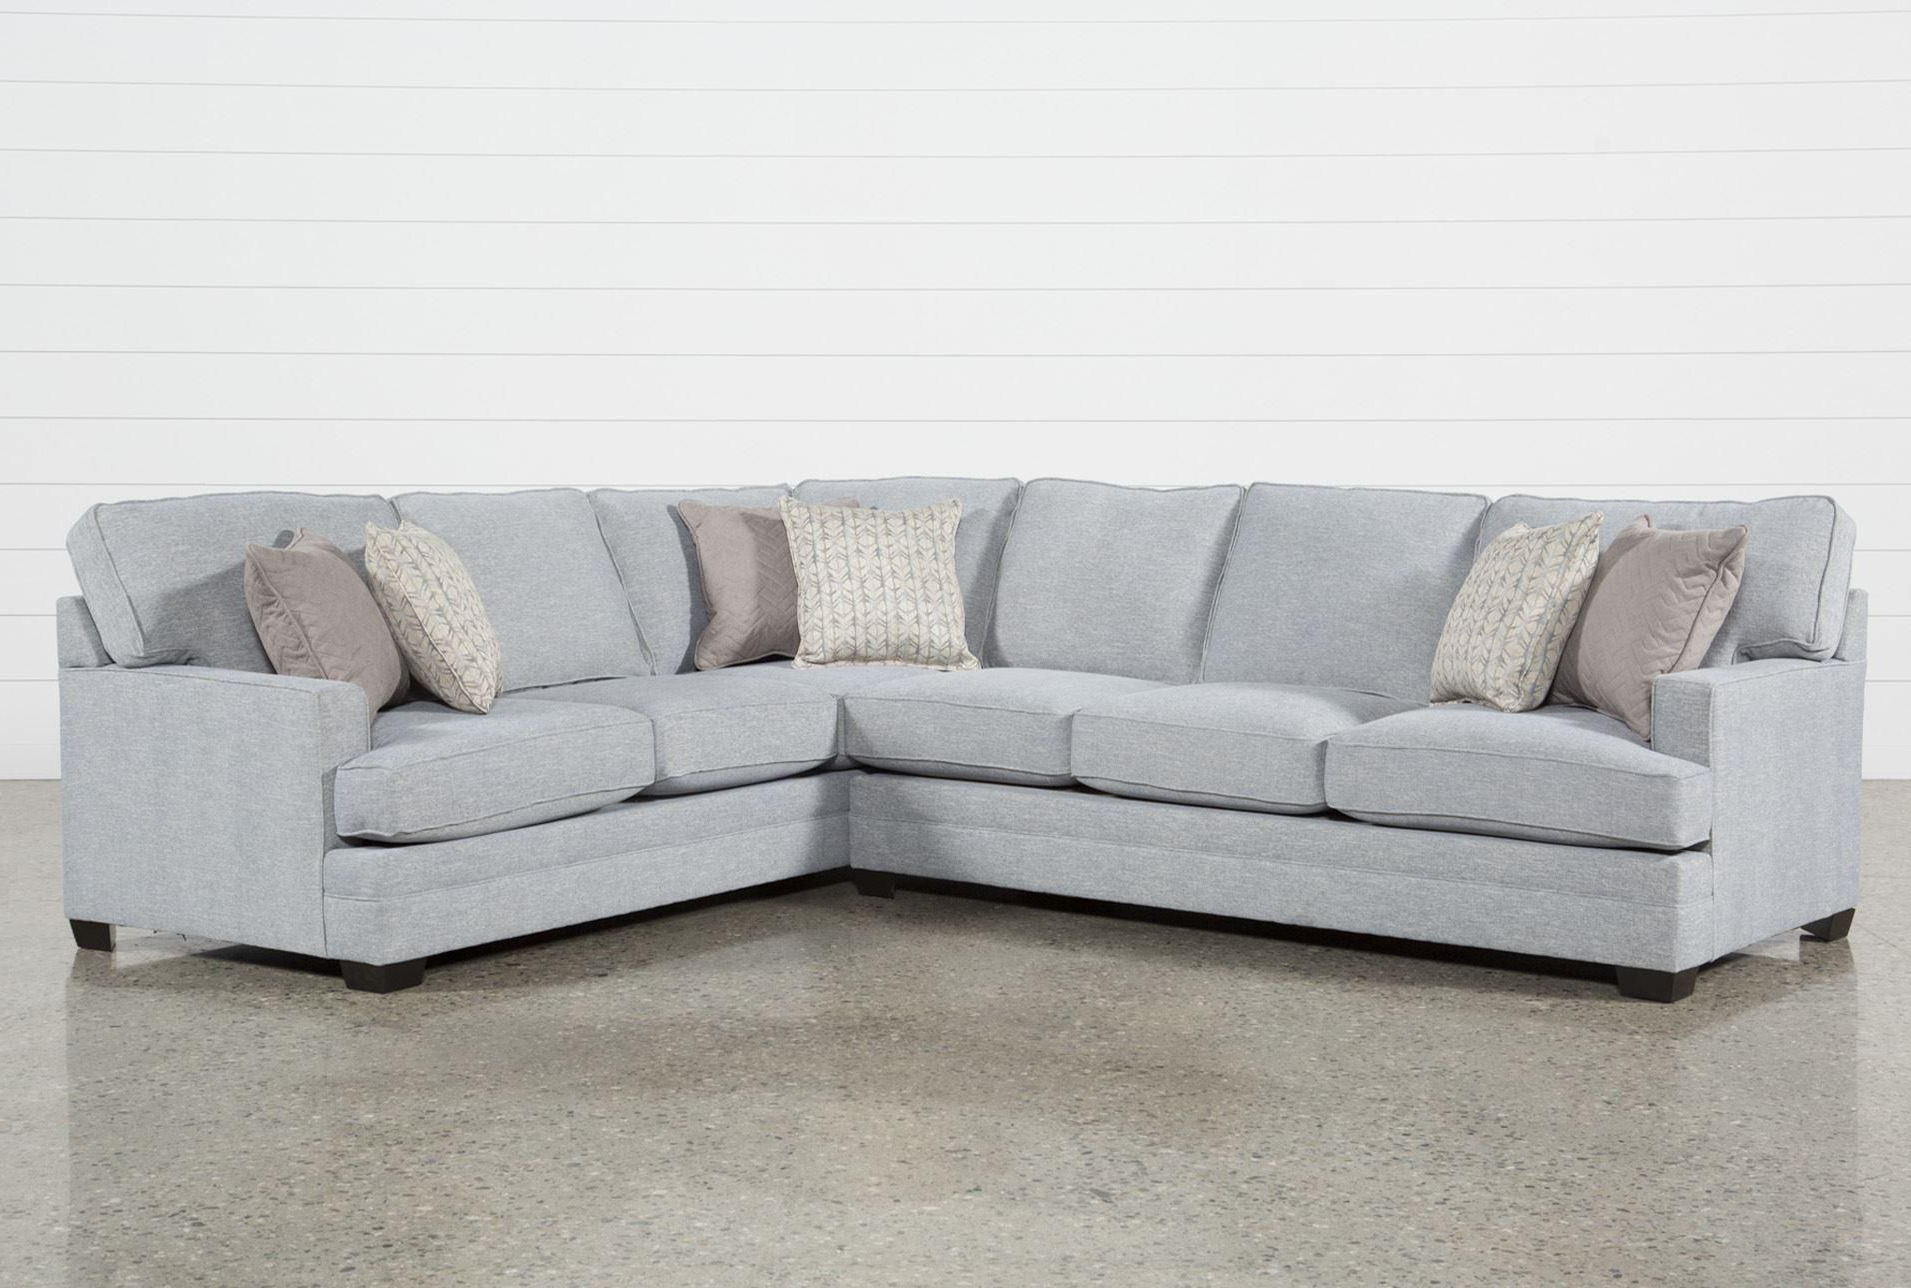 Most Recent Josephine 2 Piece Sectional W/laf Sofa In (View 10 of 20)